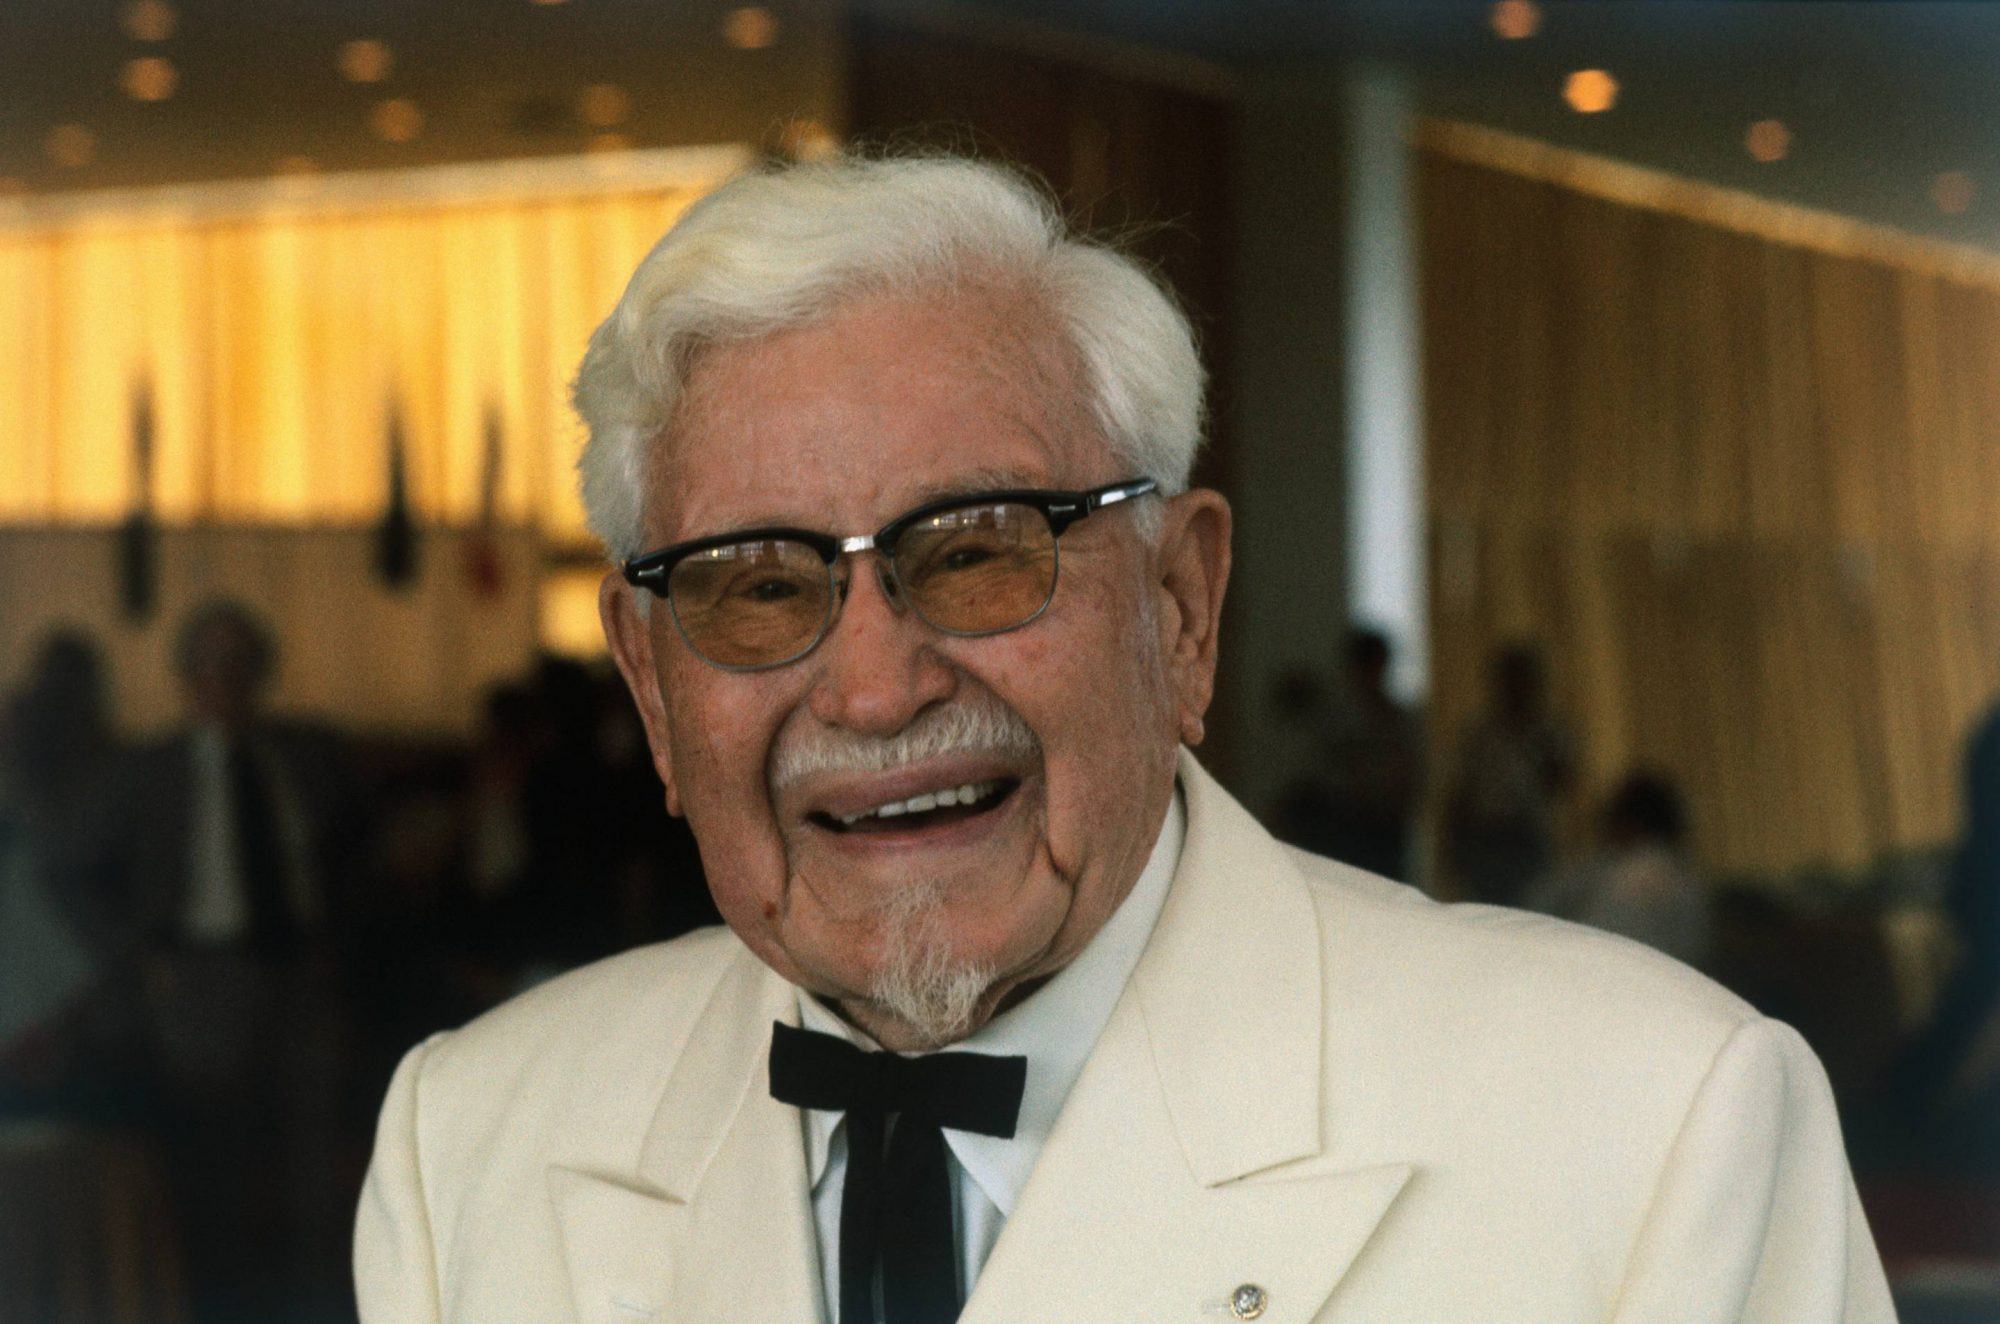 KFC Pays $11,000 to Parents Who Name Child After Colonel Sanders